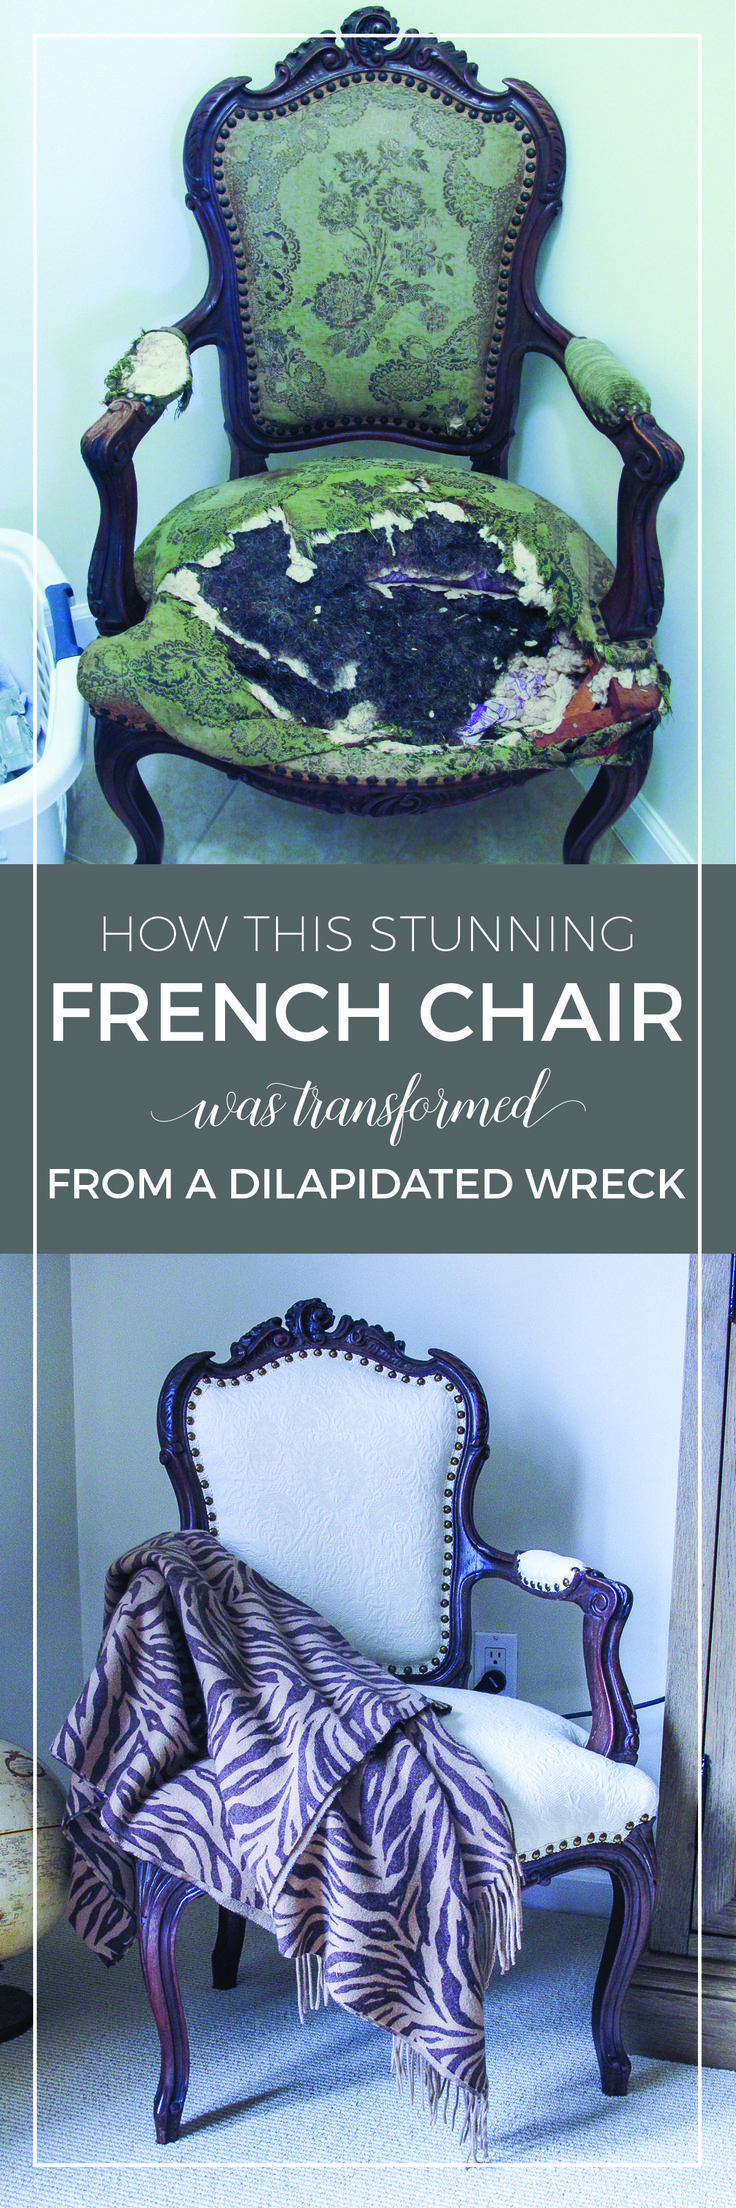 How this stunning French chair was transformed from a dilapidated wreck | Vintage French chair makeover |  Reupholster a beautiful French armchair | French bedroom decor ideas | designthusiasm.com